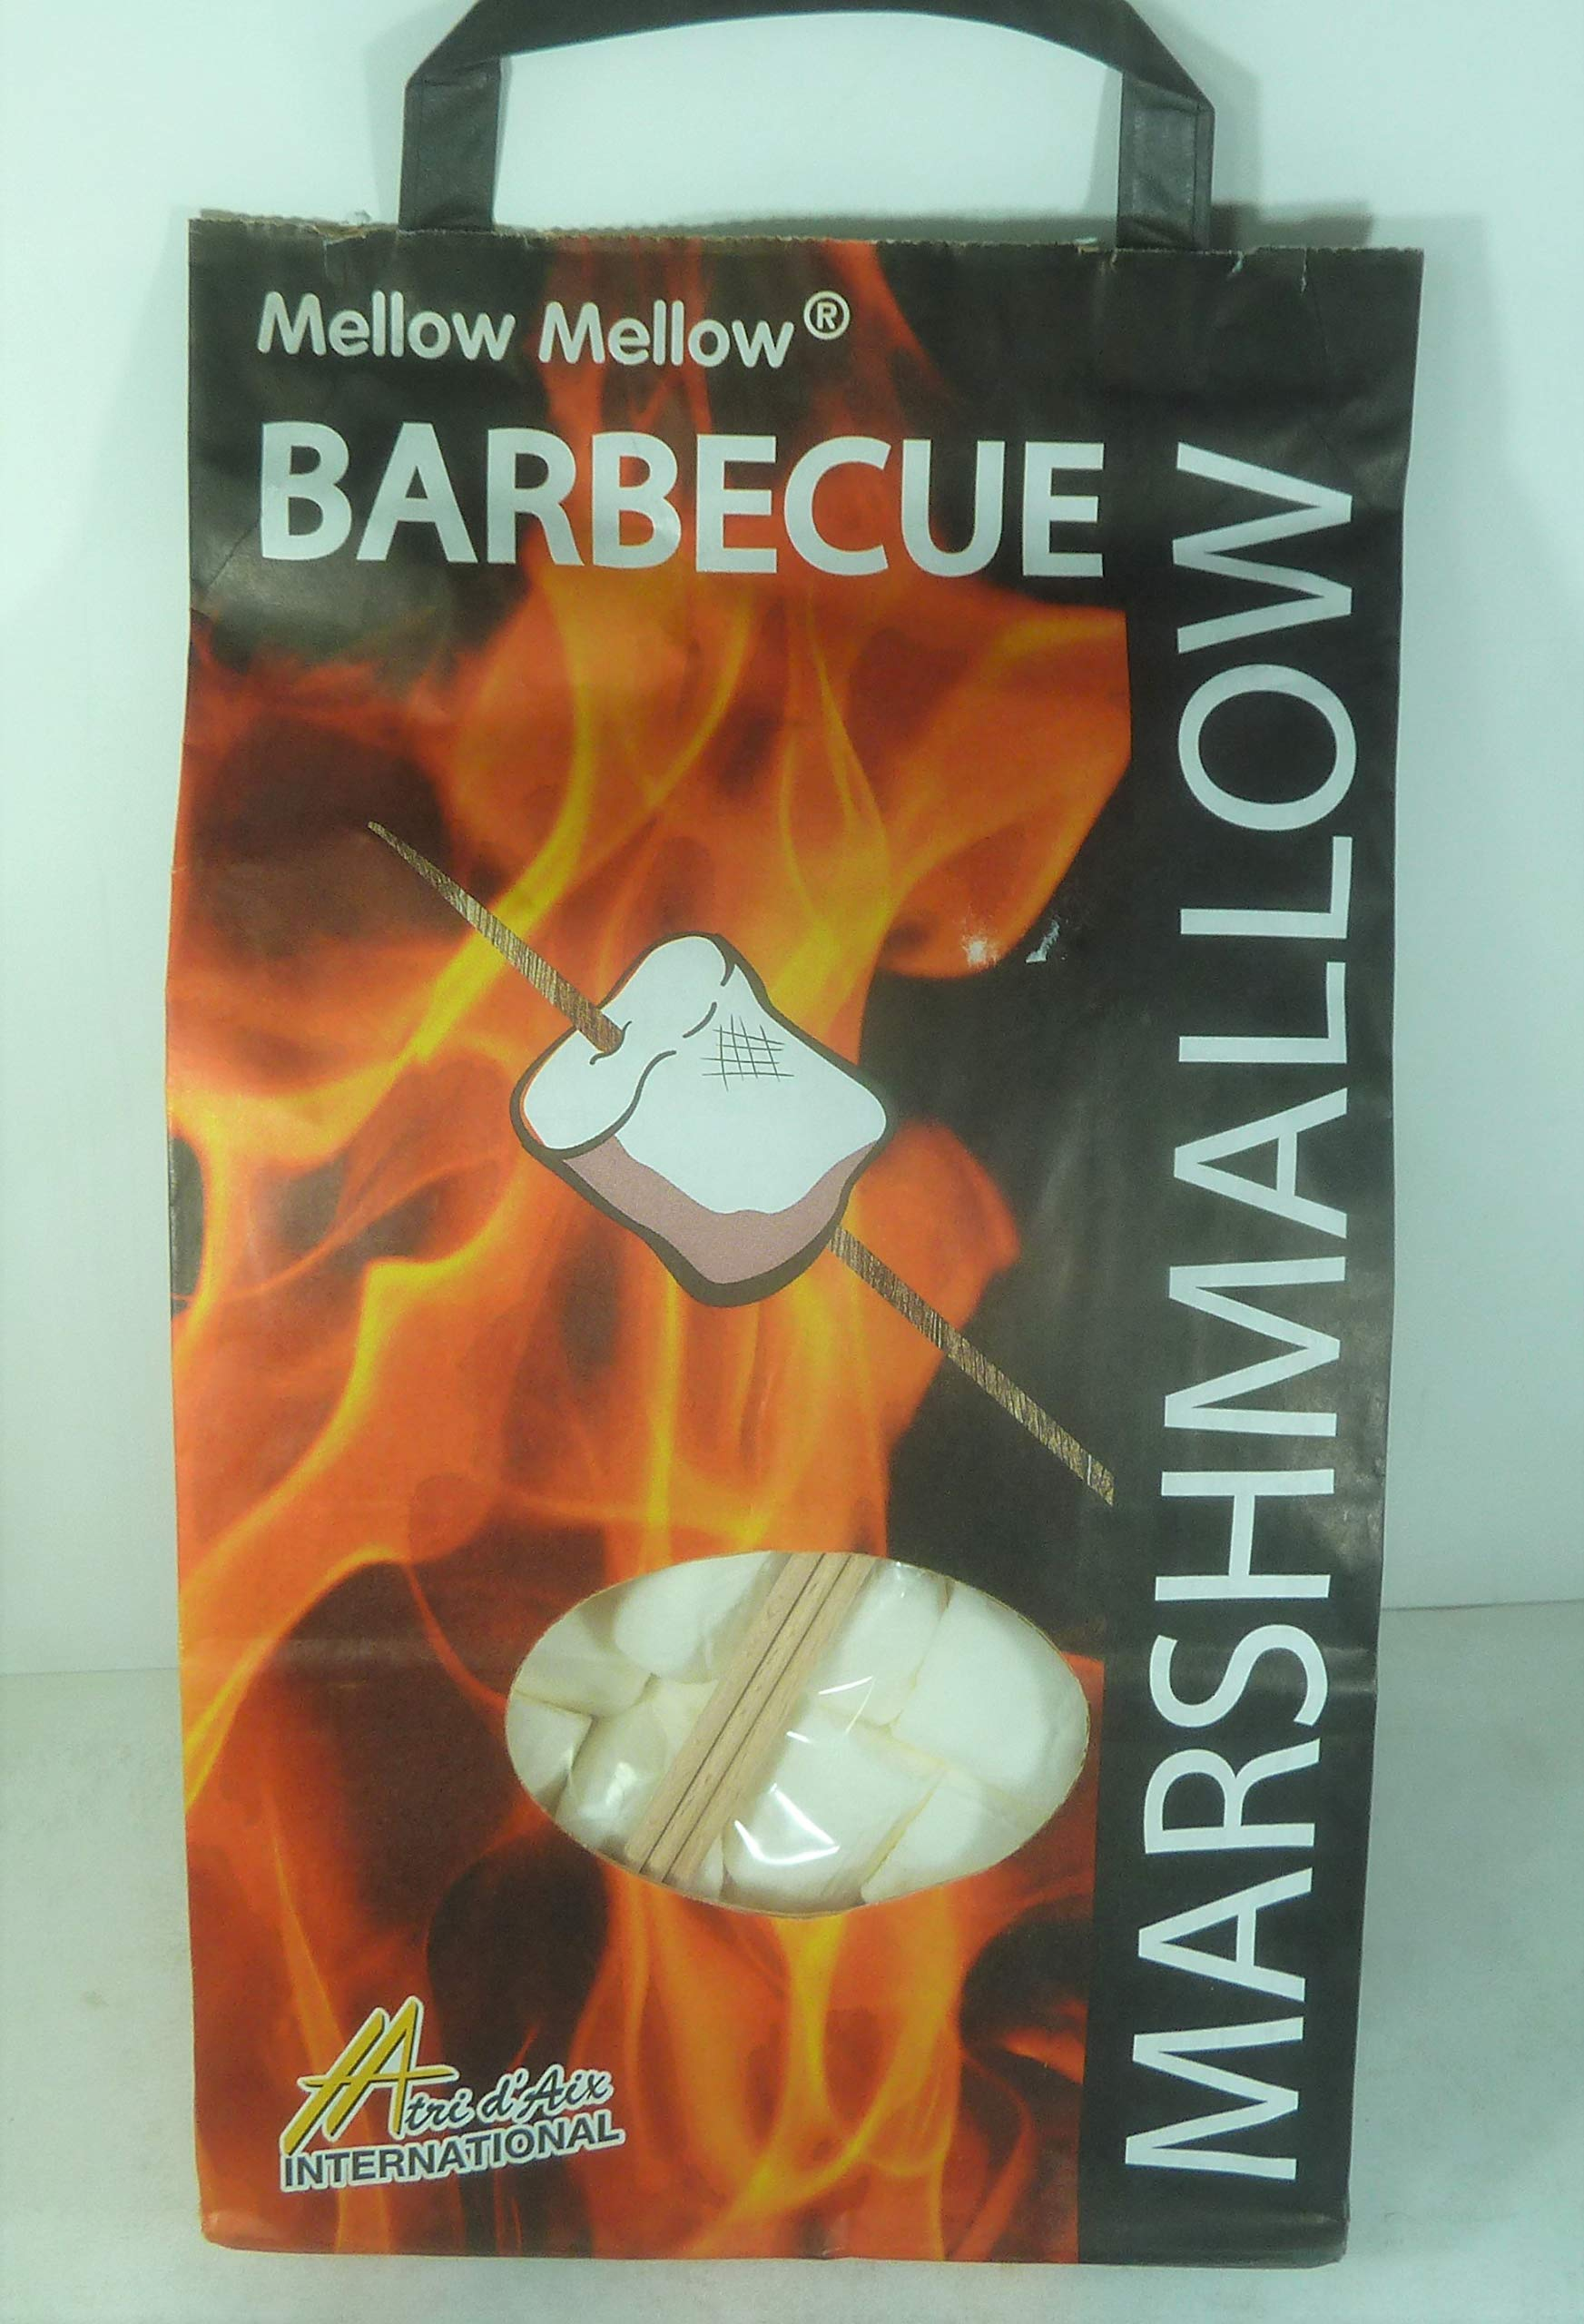 BARBECUE MARSHMALLOW MELLOW MELLOW 1 Bag 500g,Fresh